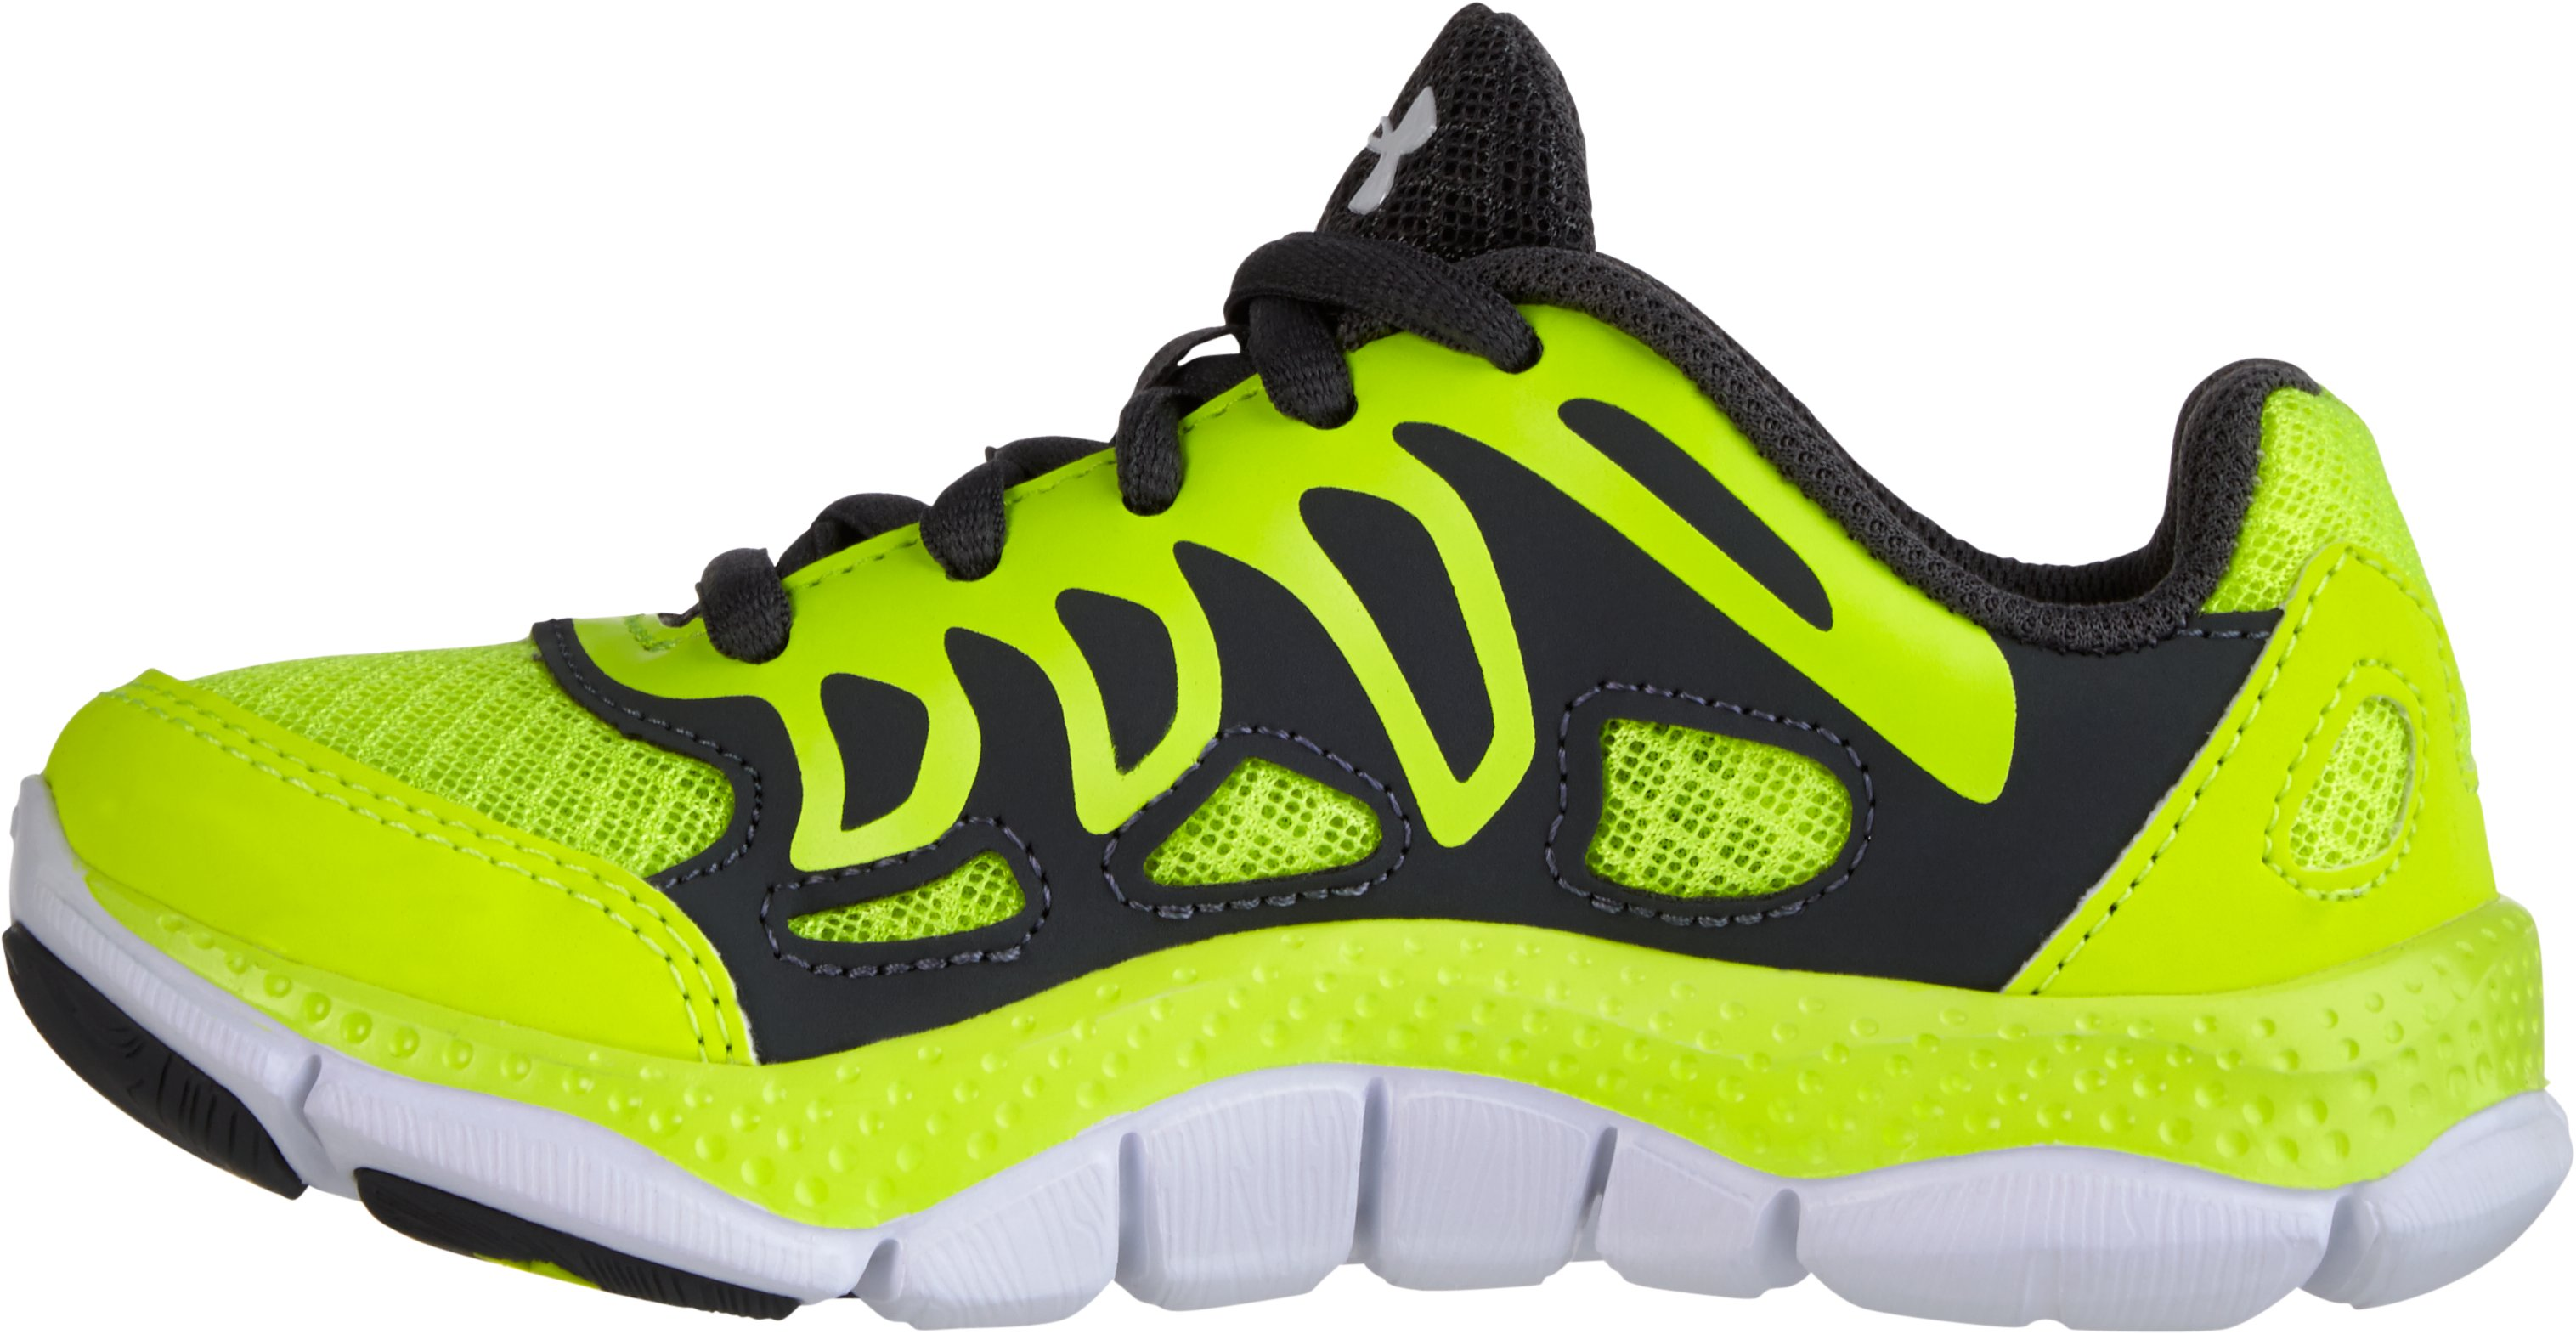 Boys' UA Engage Pre-School Shoes, High-Vis Yellow